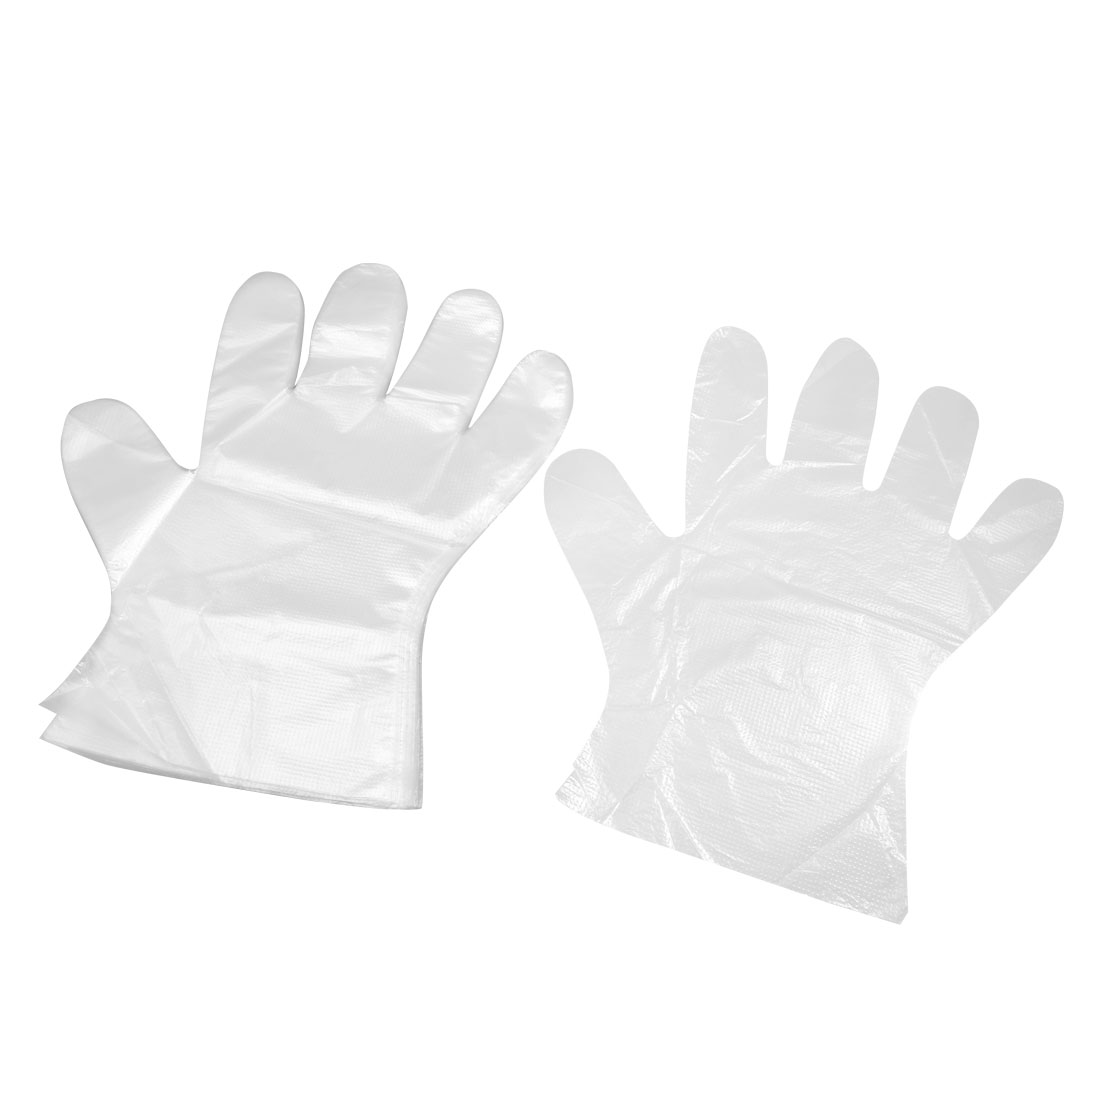 100 Pcs Food Service Hand Protective Plastic Disposable Gloves Clear